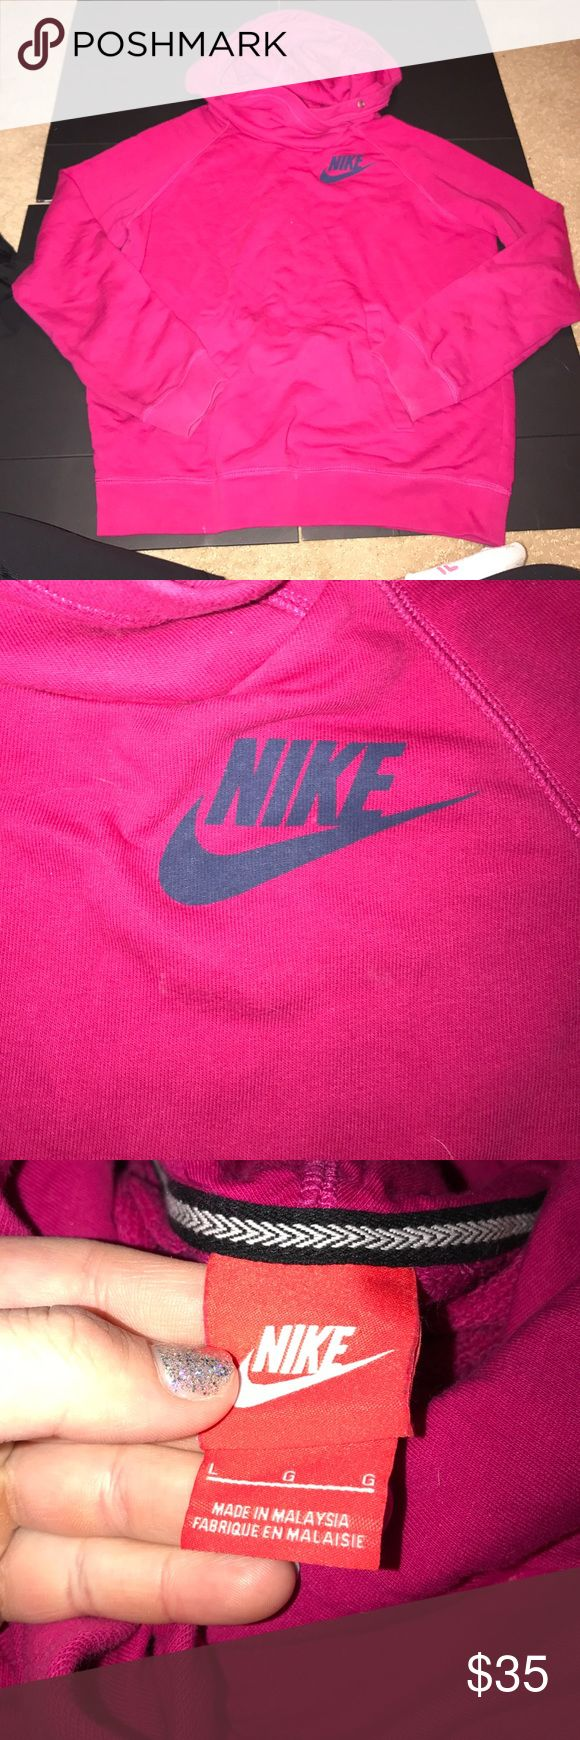 Nike cowl neck hoodie ECU no material issues! Size large! Pink color cowl neck very comfy! Nike Jackets & Coats